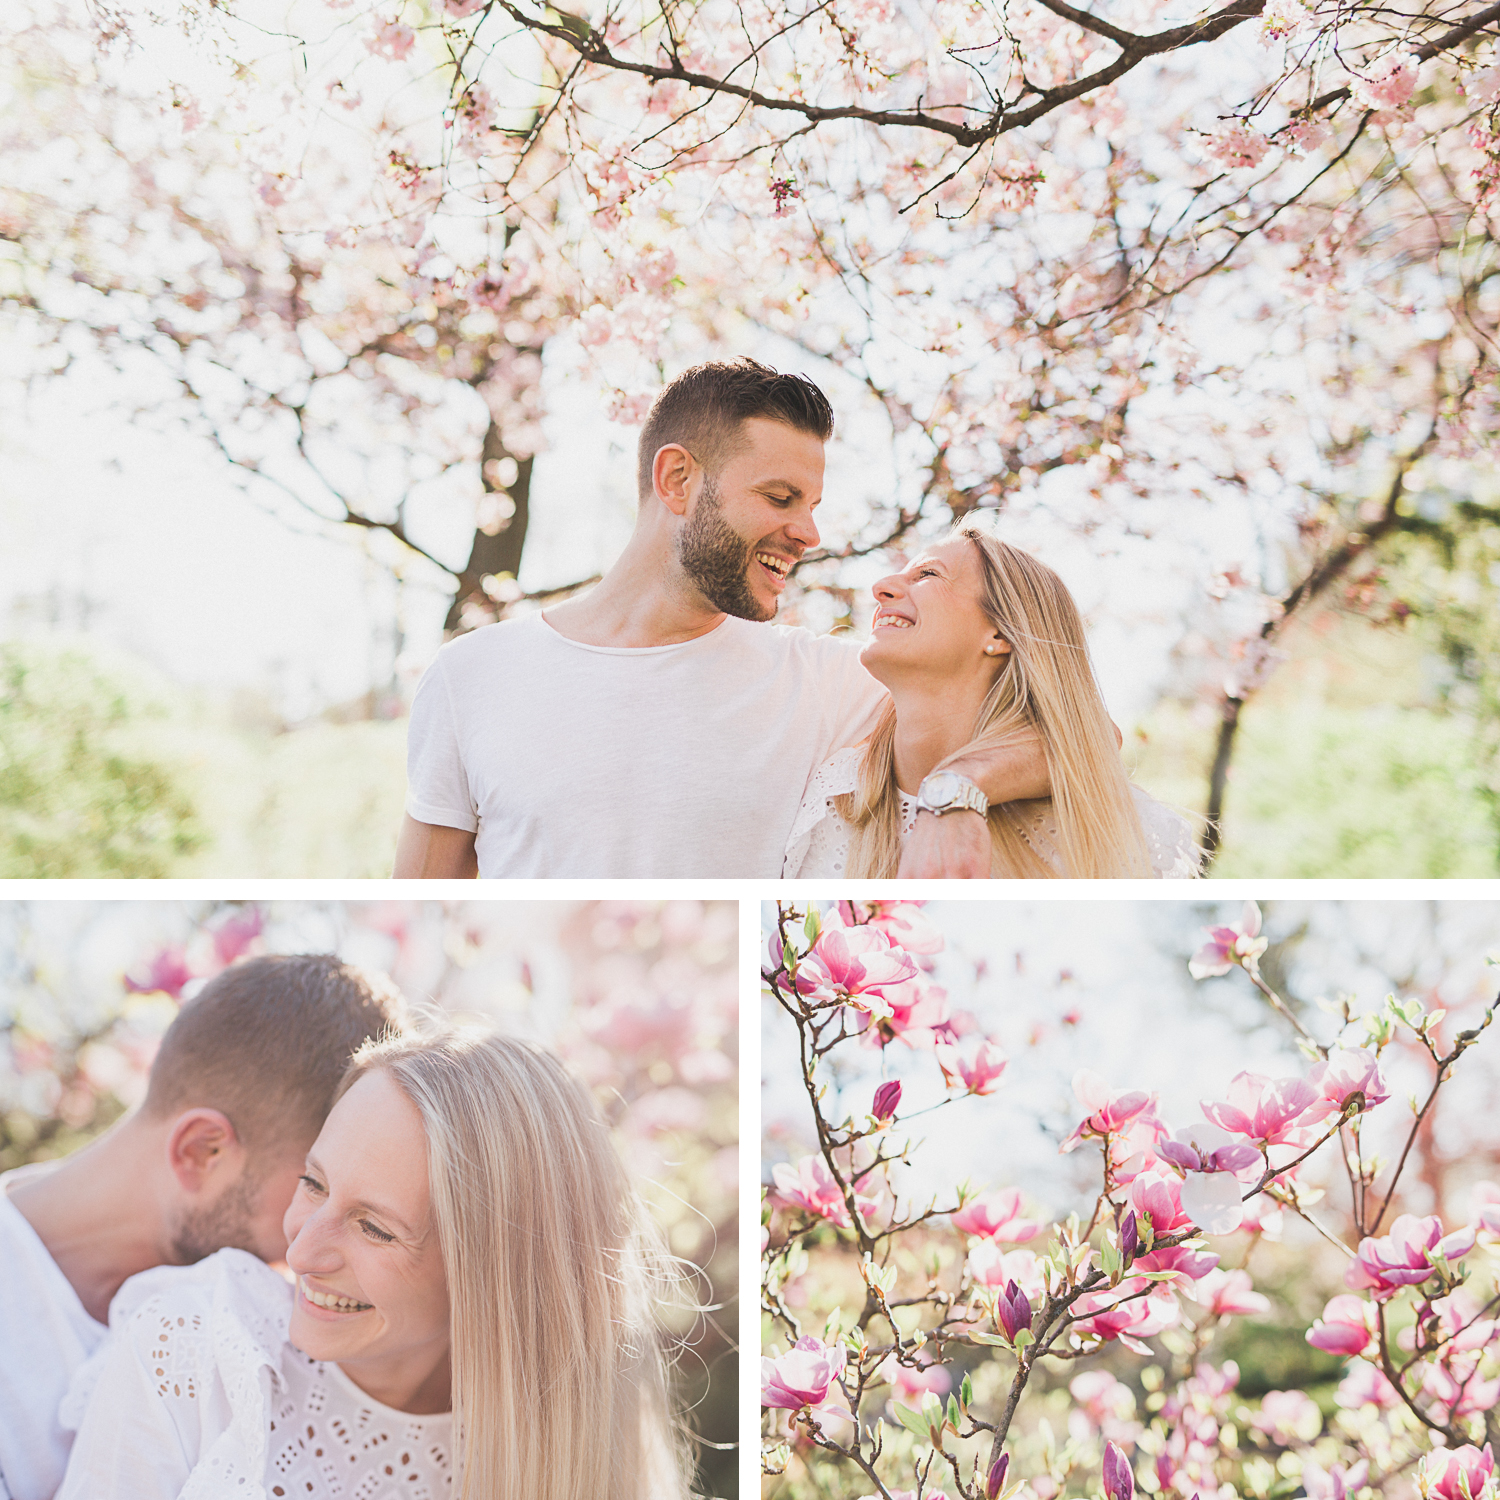 Engagement Shooting Tipps